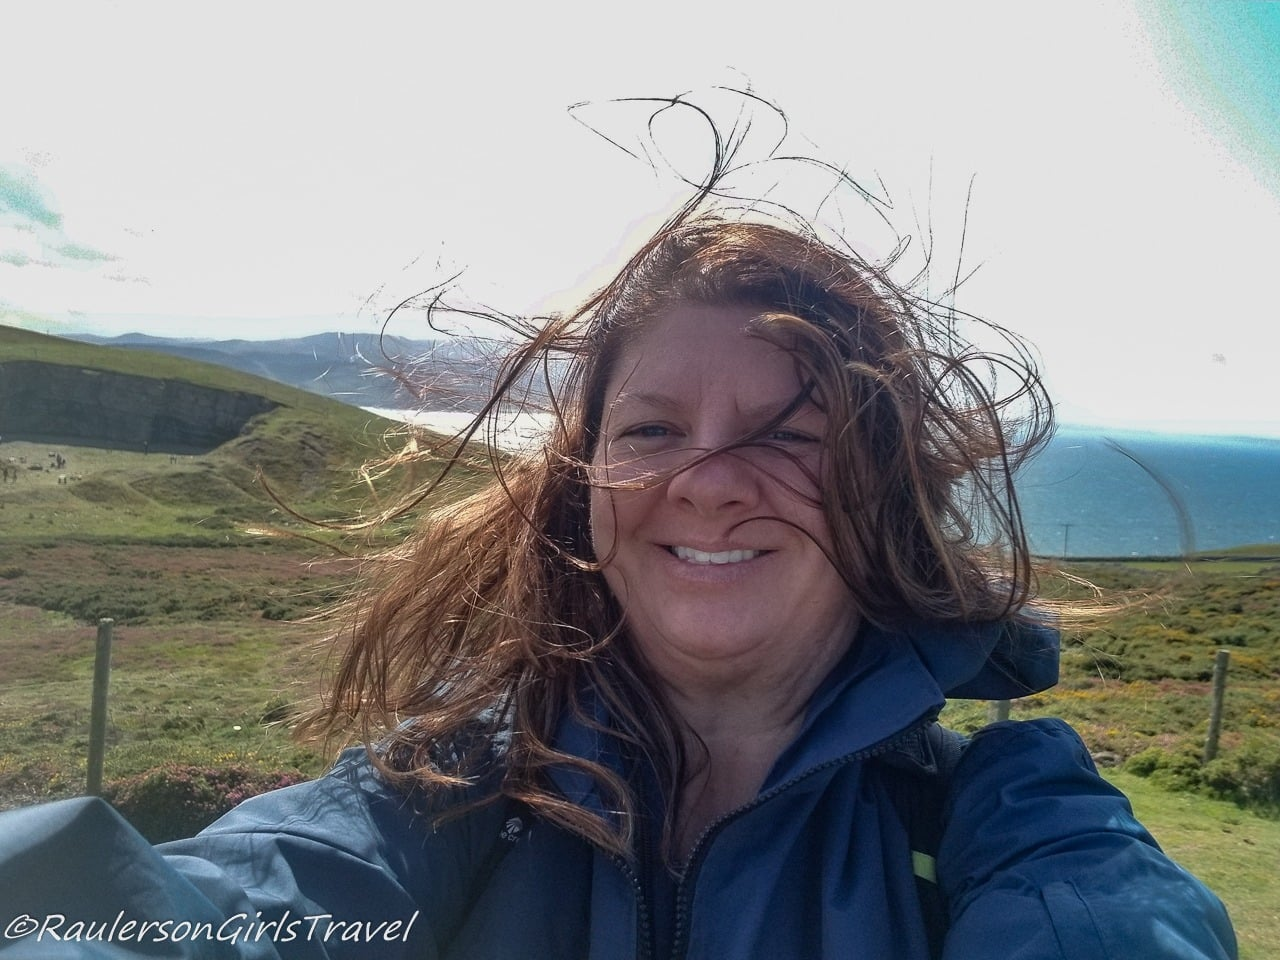 Windy Day on the Great Orme Summit